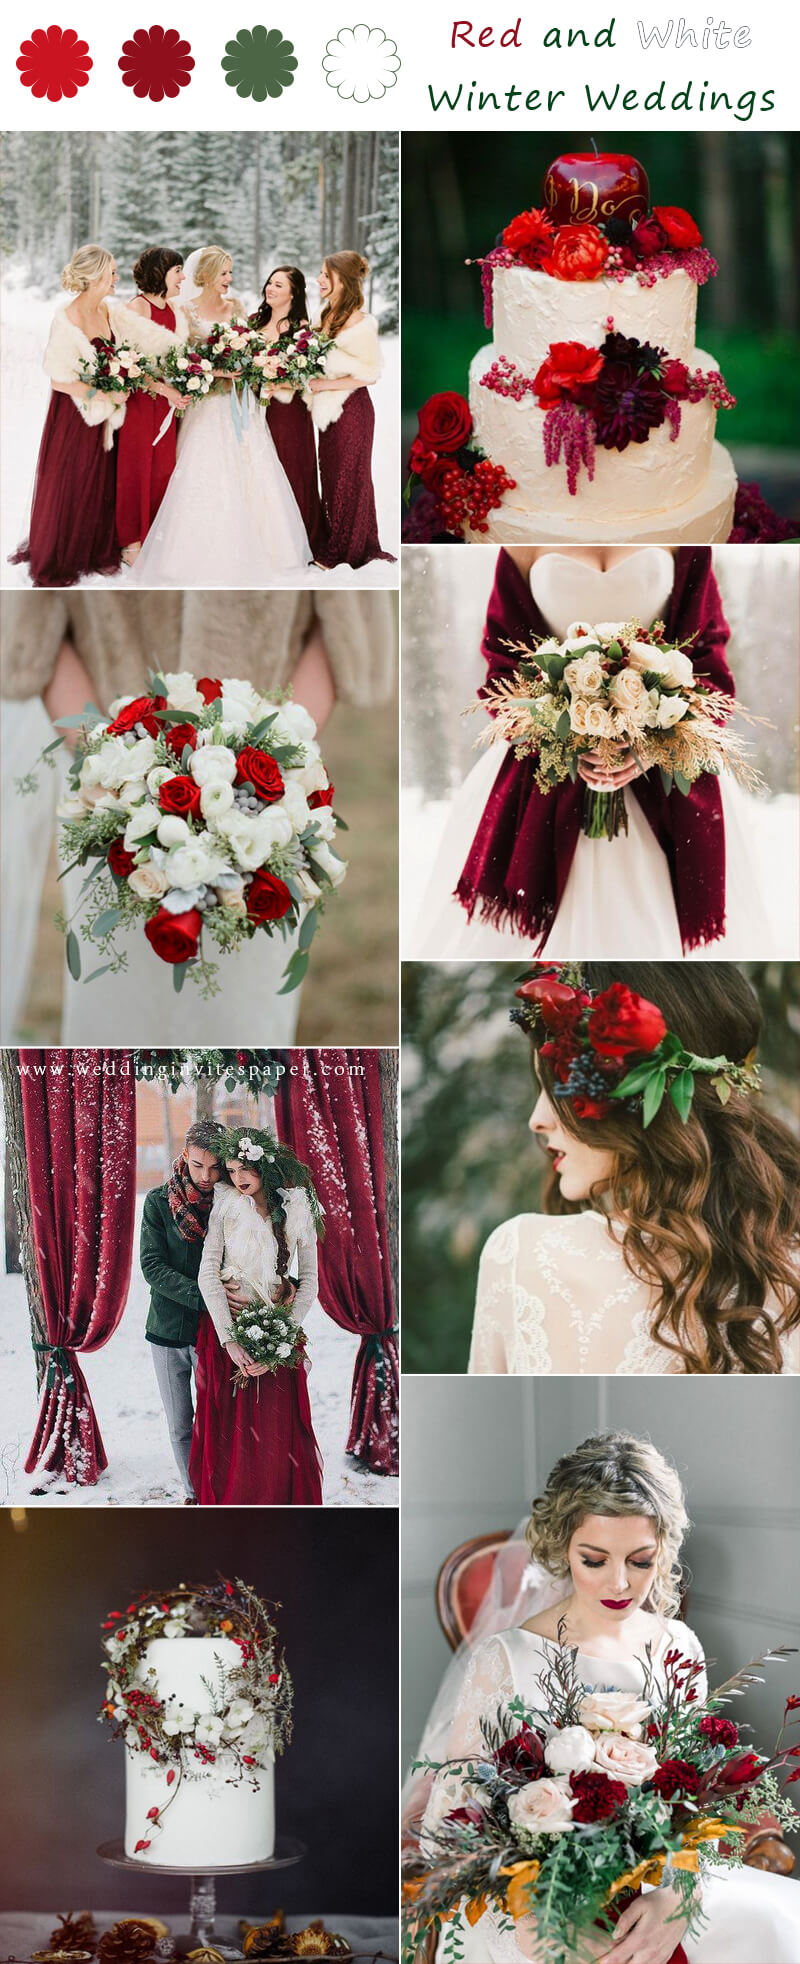 Red and White Winter Weddings.jpg